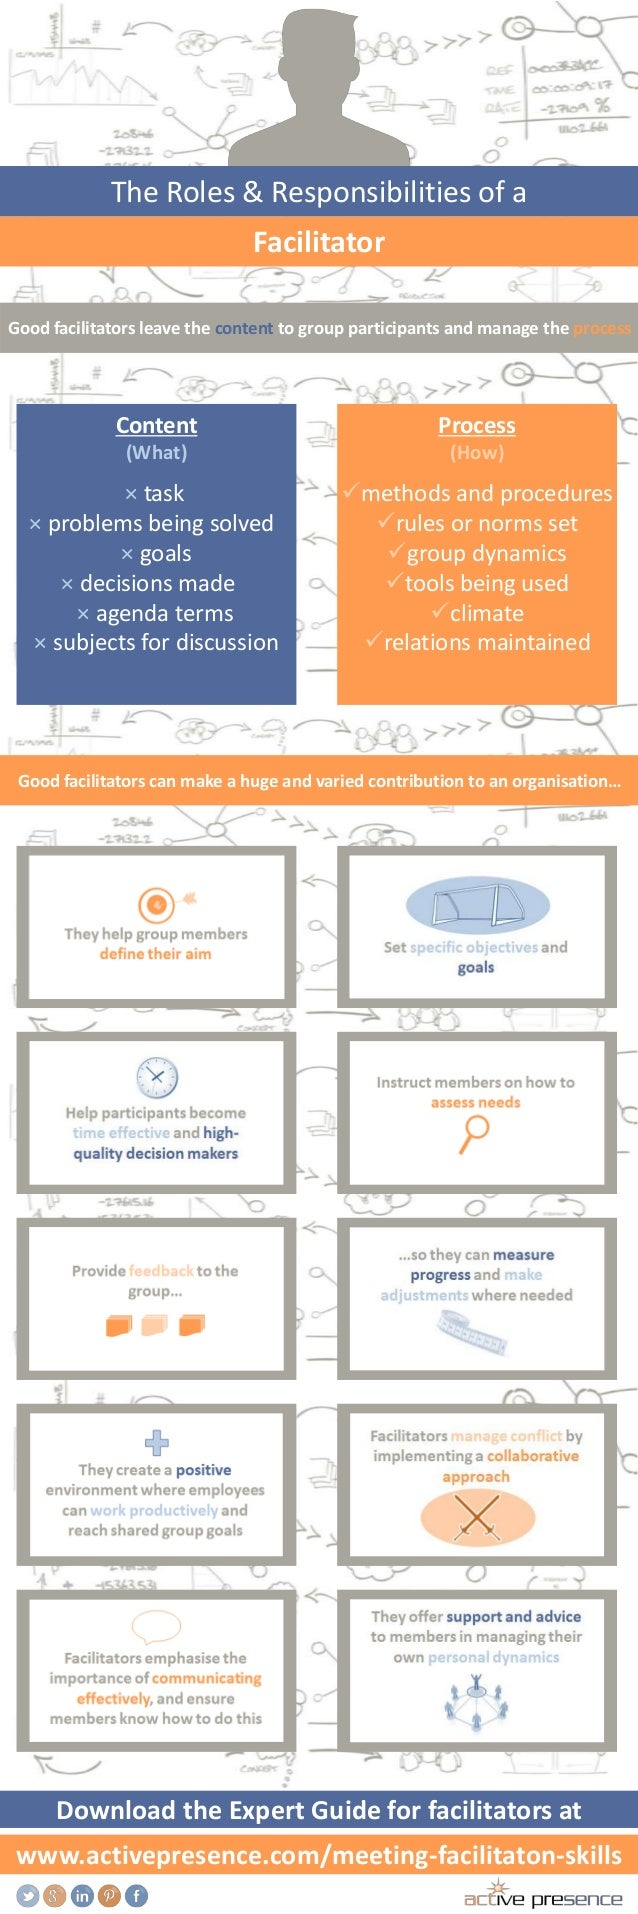 INFOGRAPHIC: The Roles & Responsibilities of a Facilitator